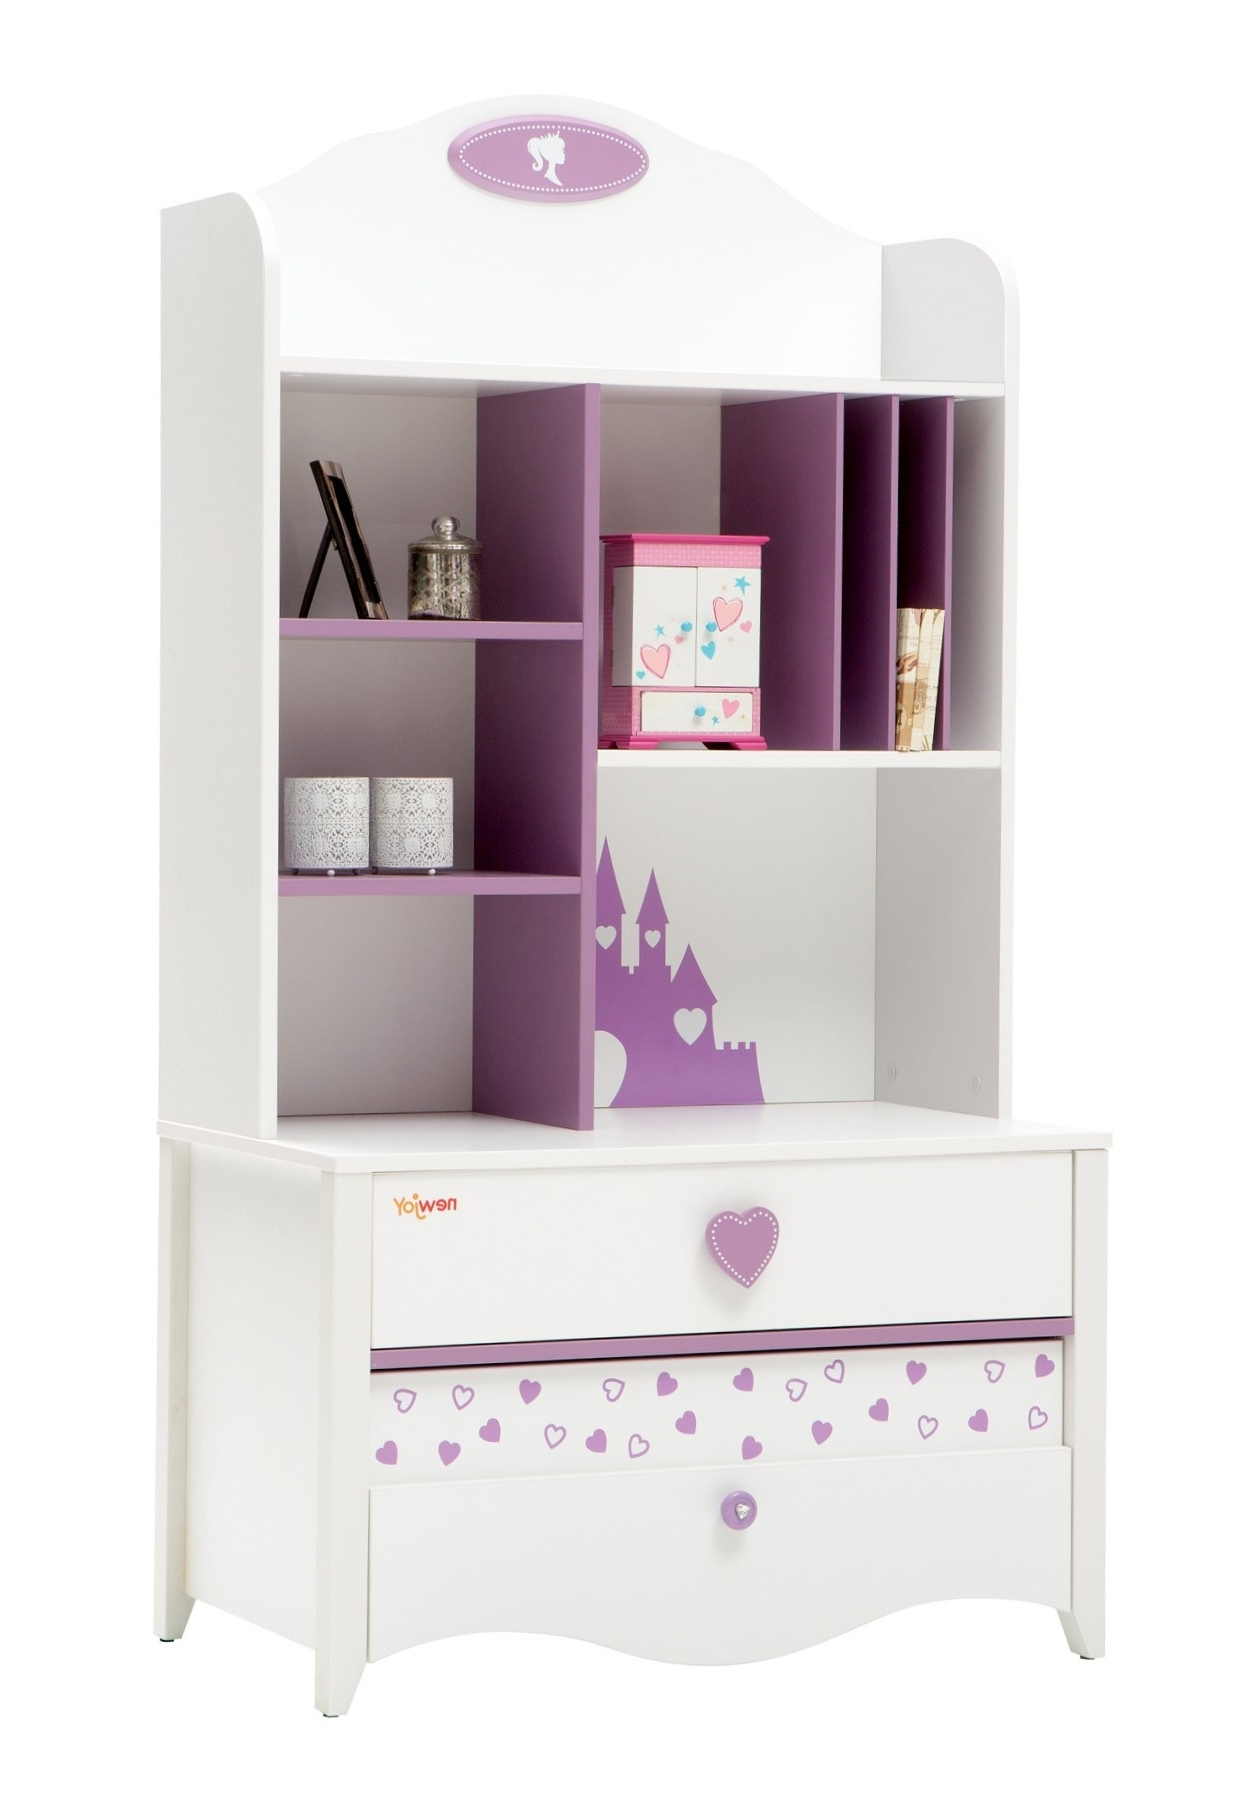 Newjoy Princess Children's Bookcase Intended For Well Liked Girls Bookcases (View 6 of 15)